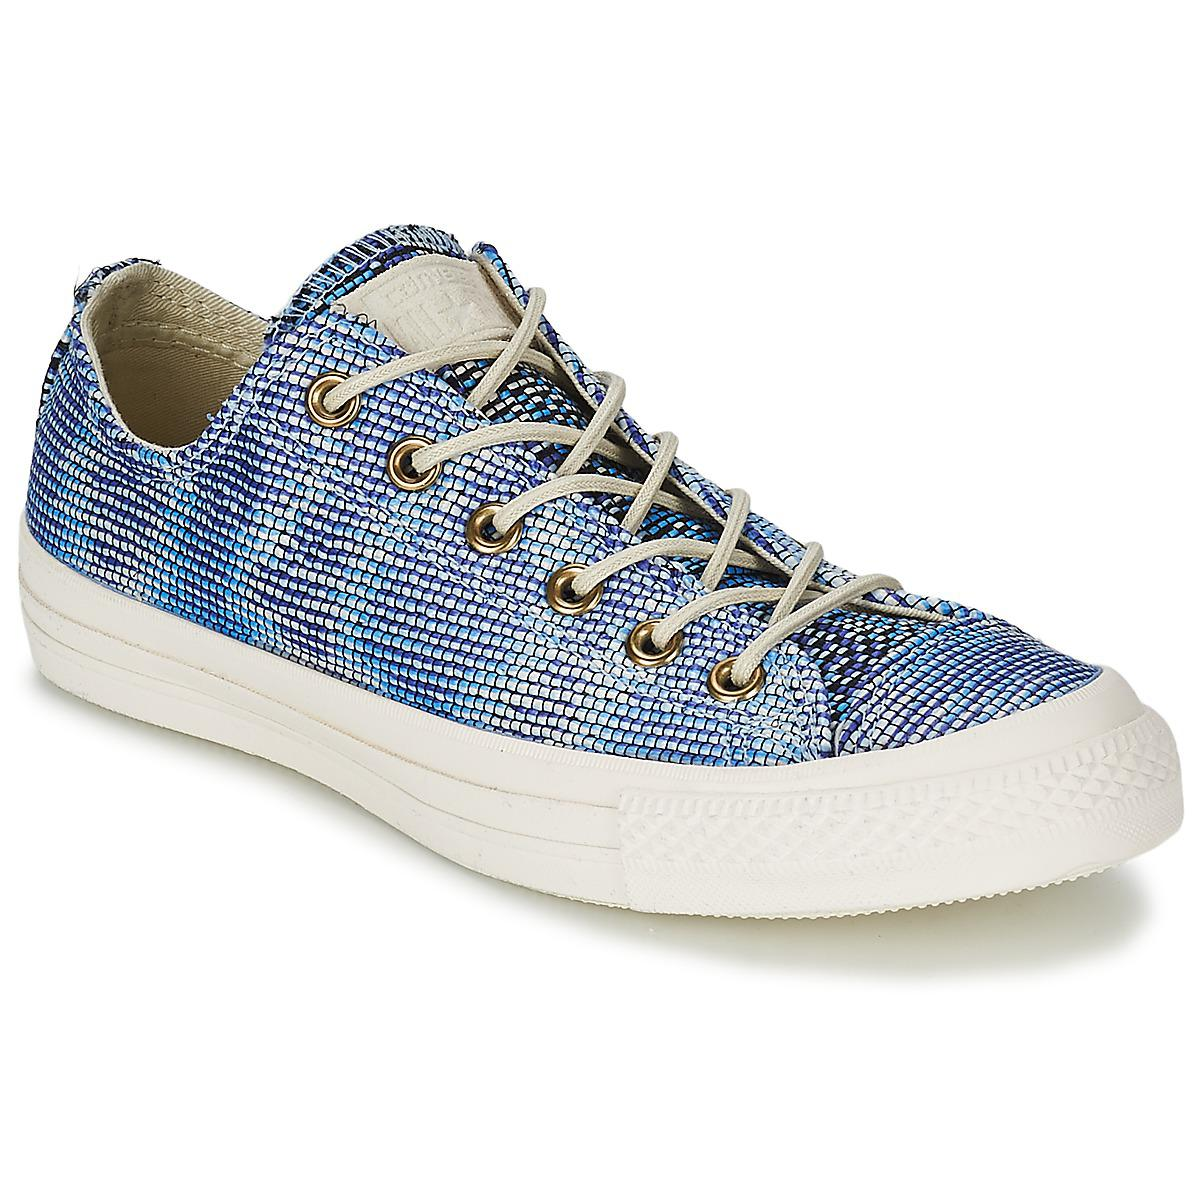 3c6bc668124b8b Converse All Star Basket Weave Ox Shoes (trainers) in Blue - Save 46 ...